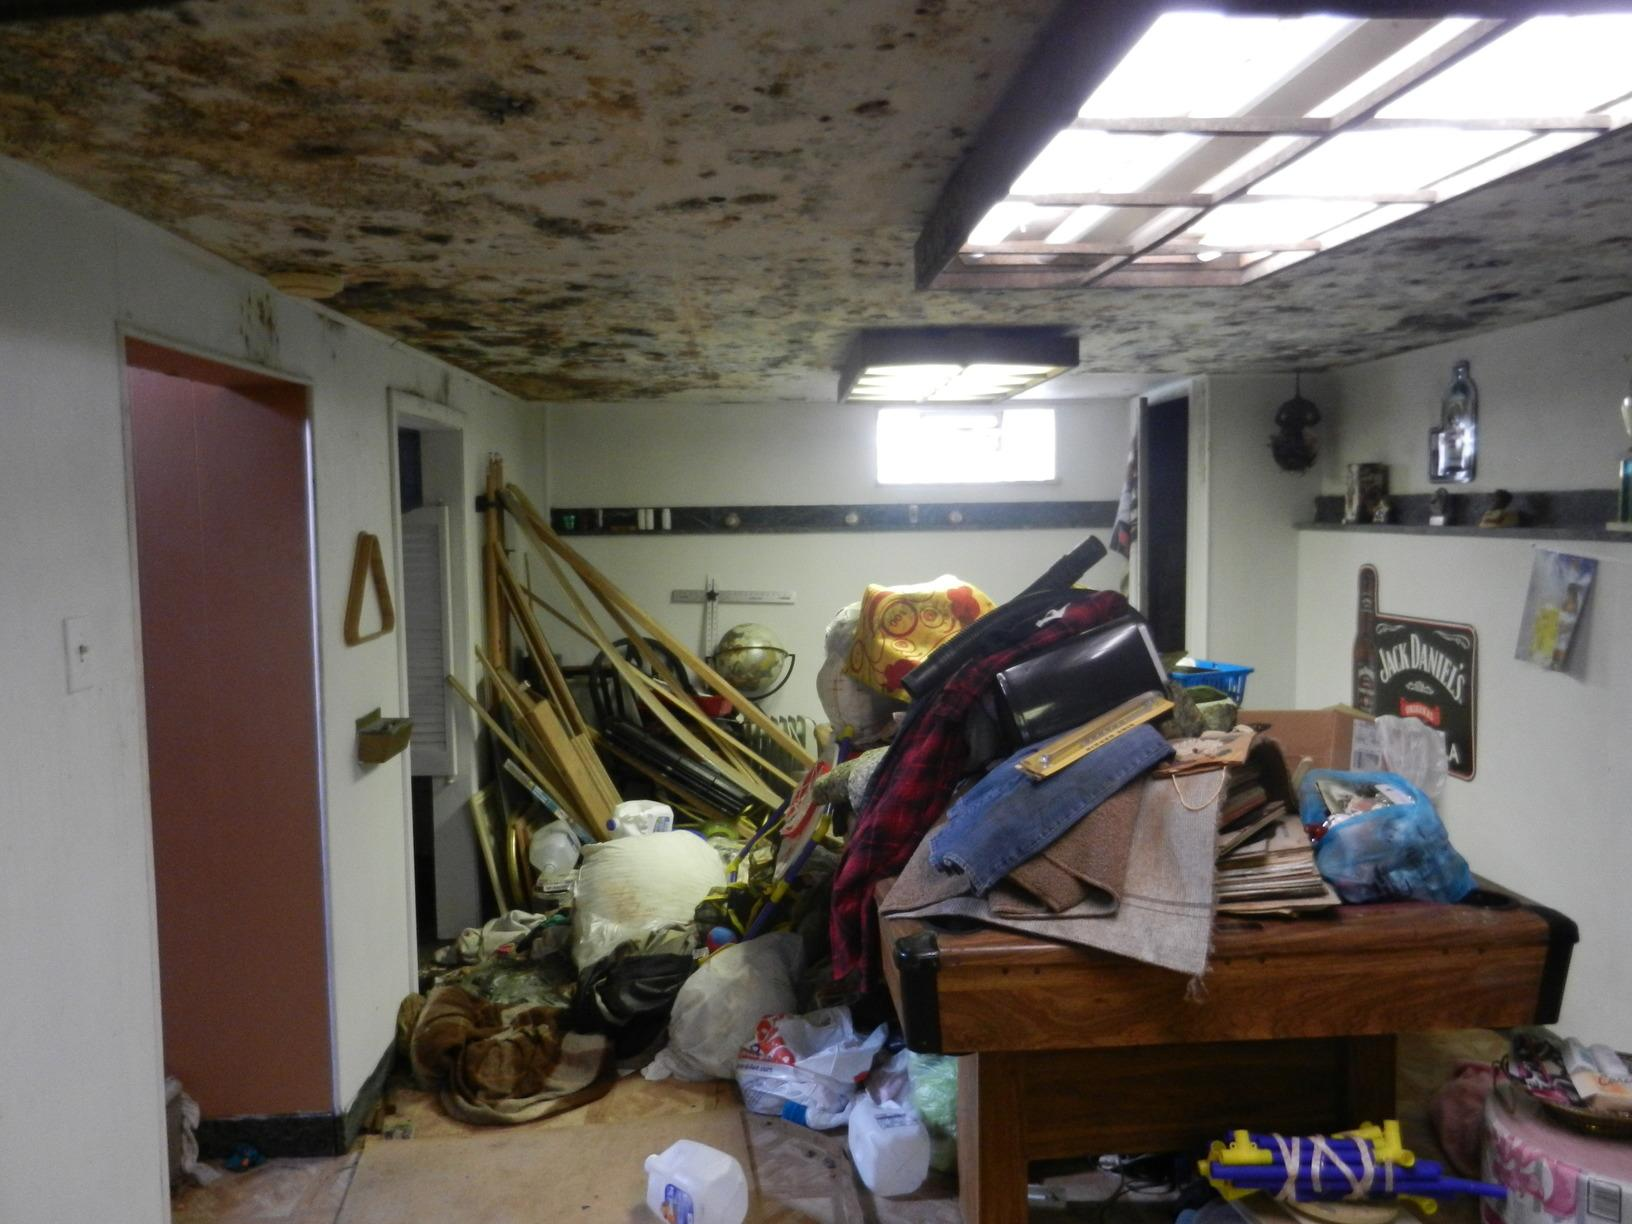 Basement Mold Remediation Job in Cleveland - Before Photo